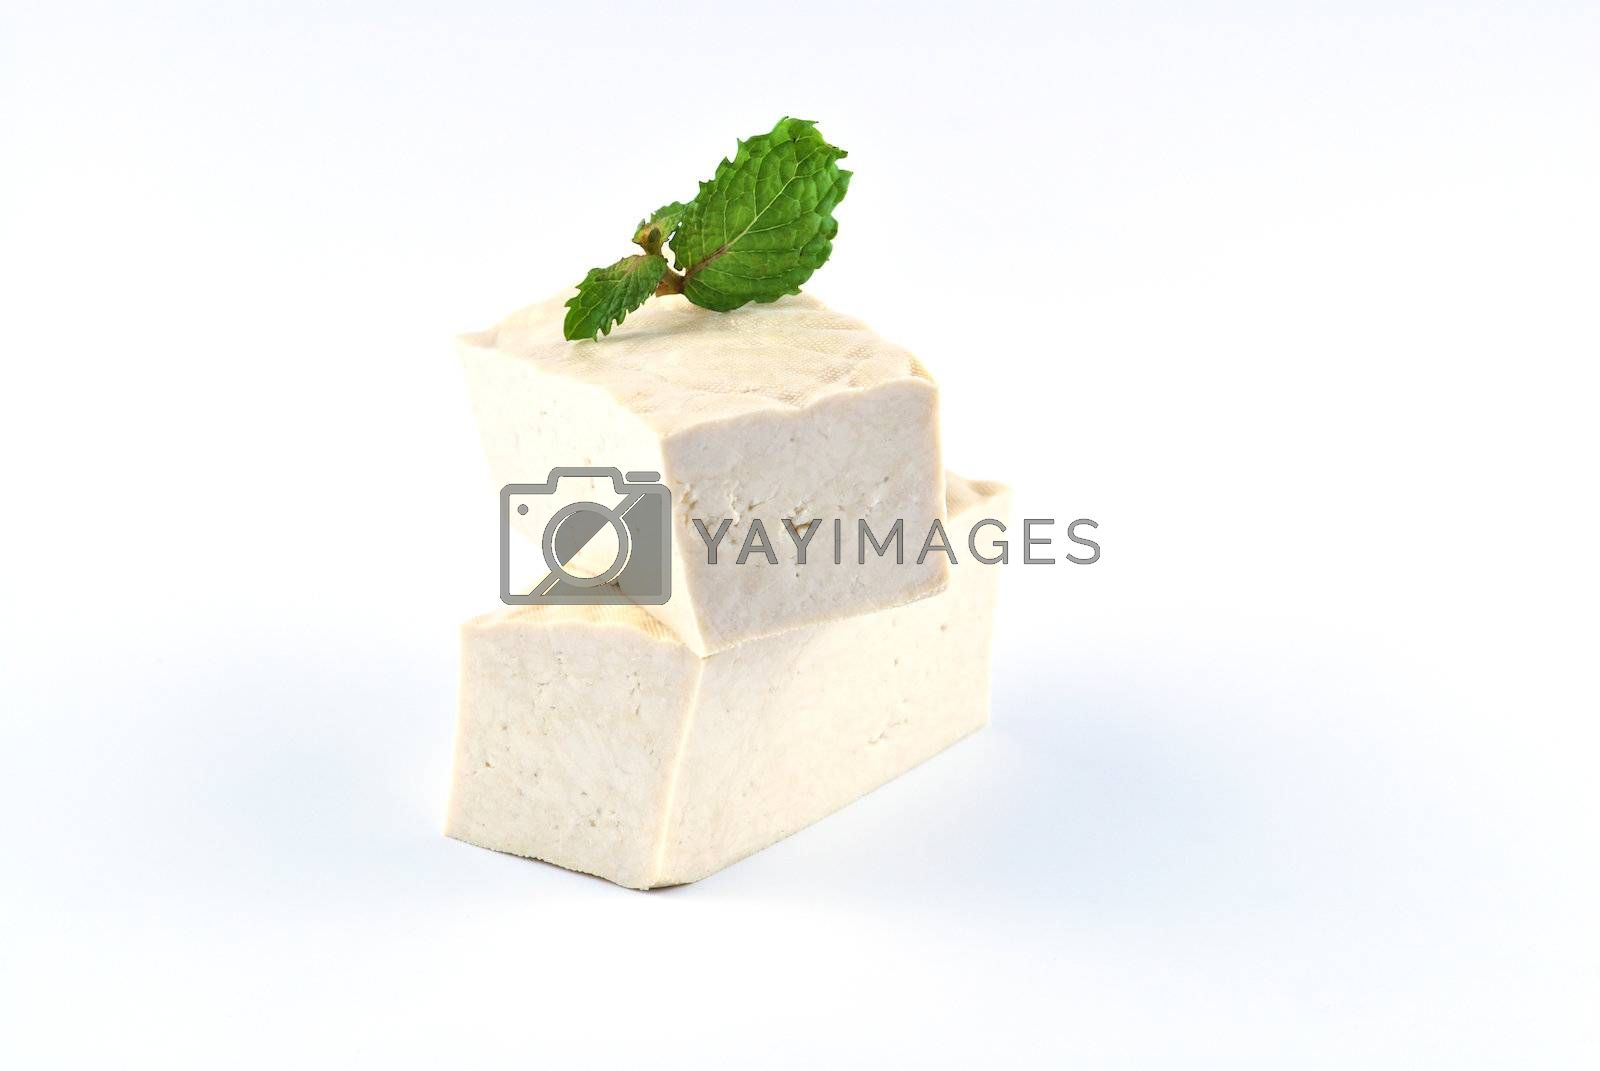 Royalty free image of tofu  by teen00000